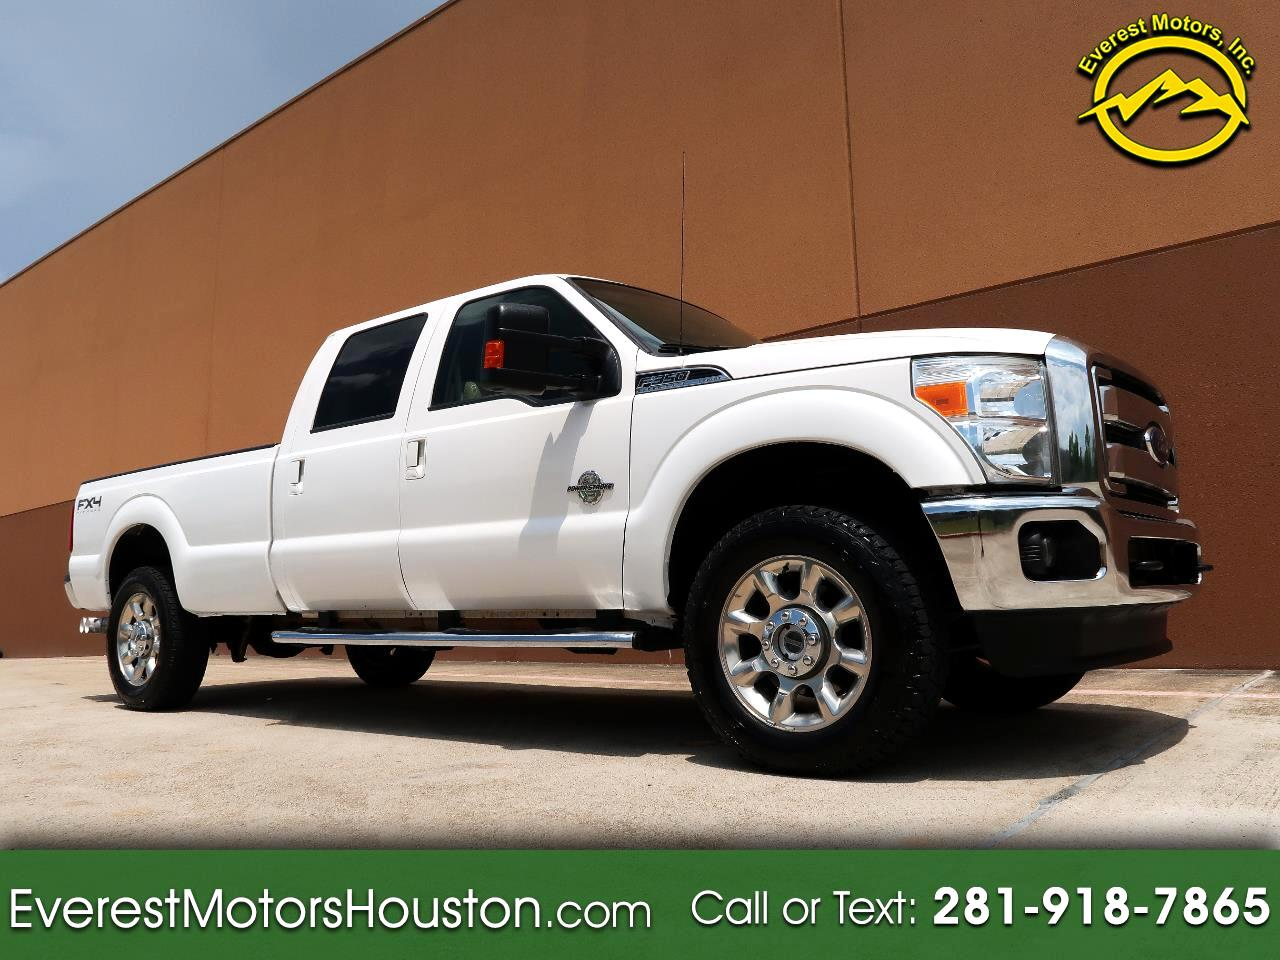 2016 Ford F-350 SD LARIAT CREW CAB LONG BED 4WD DIESEL